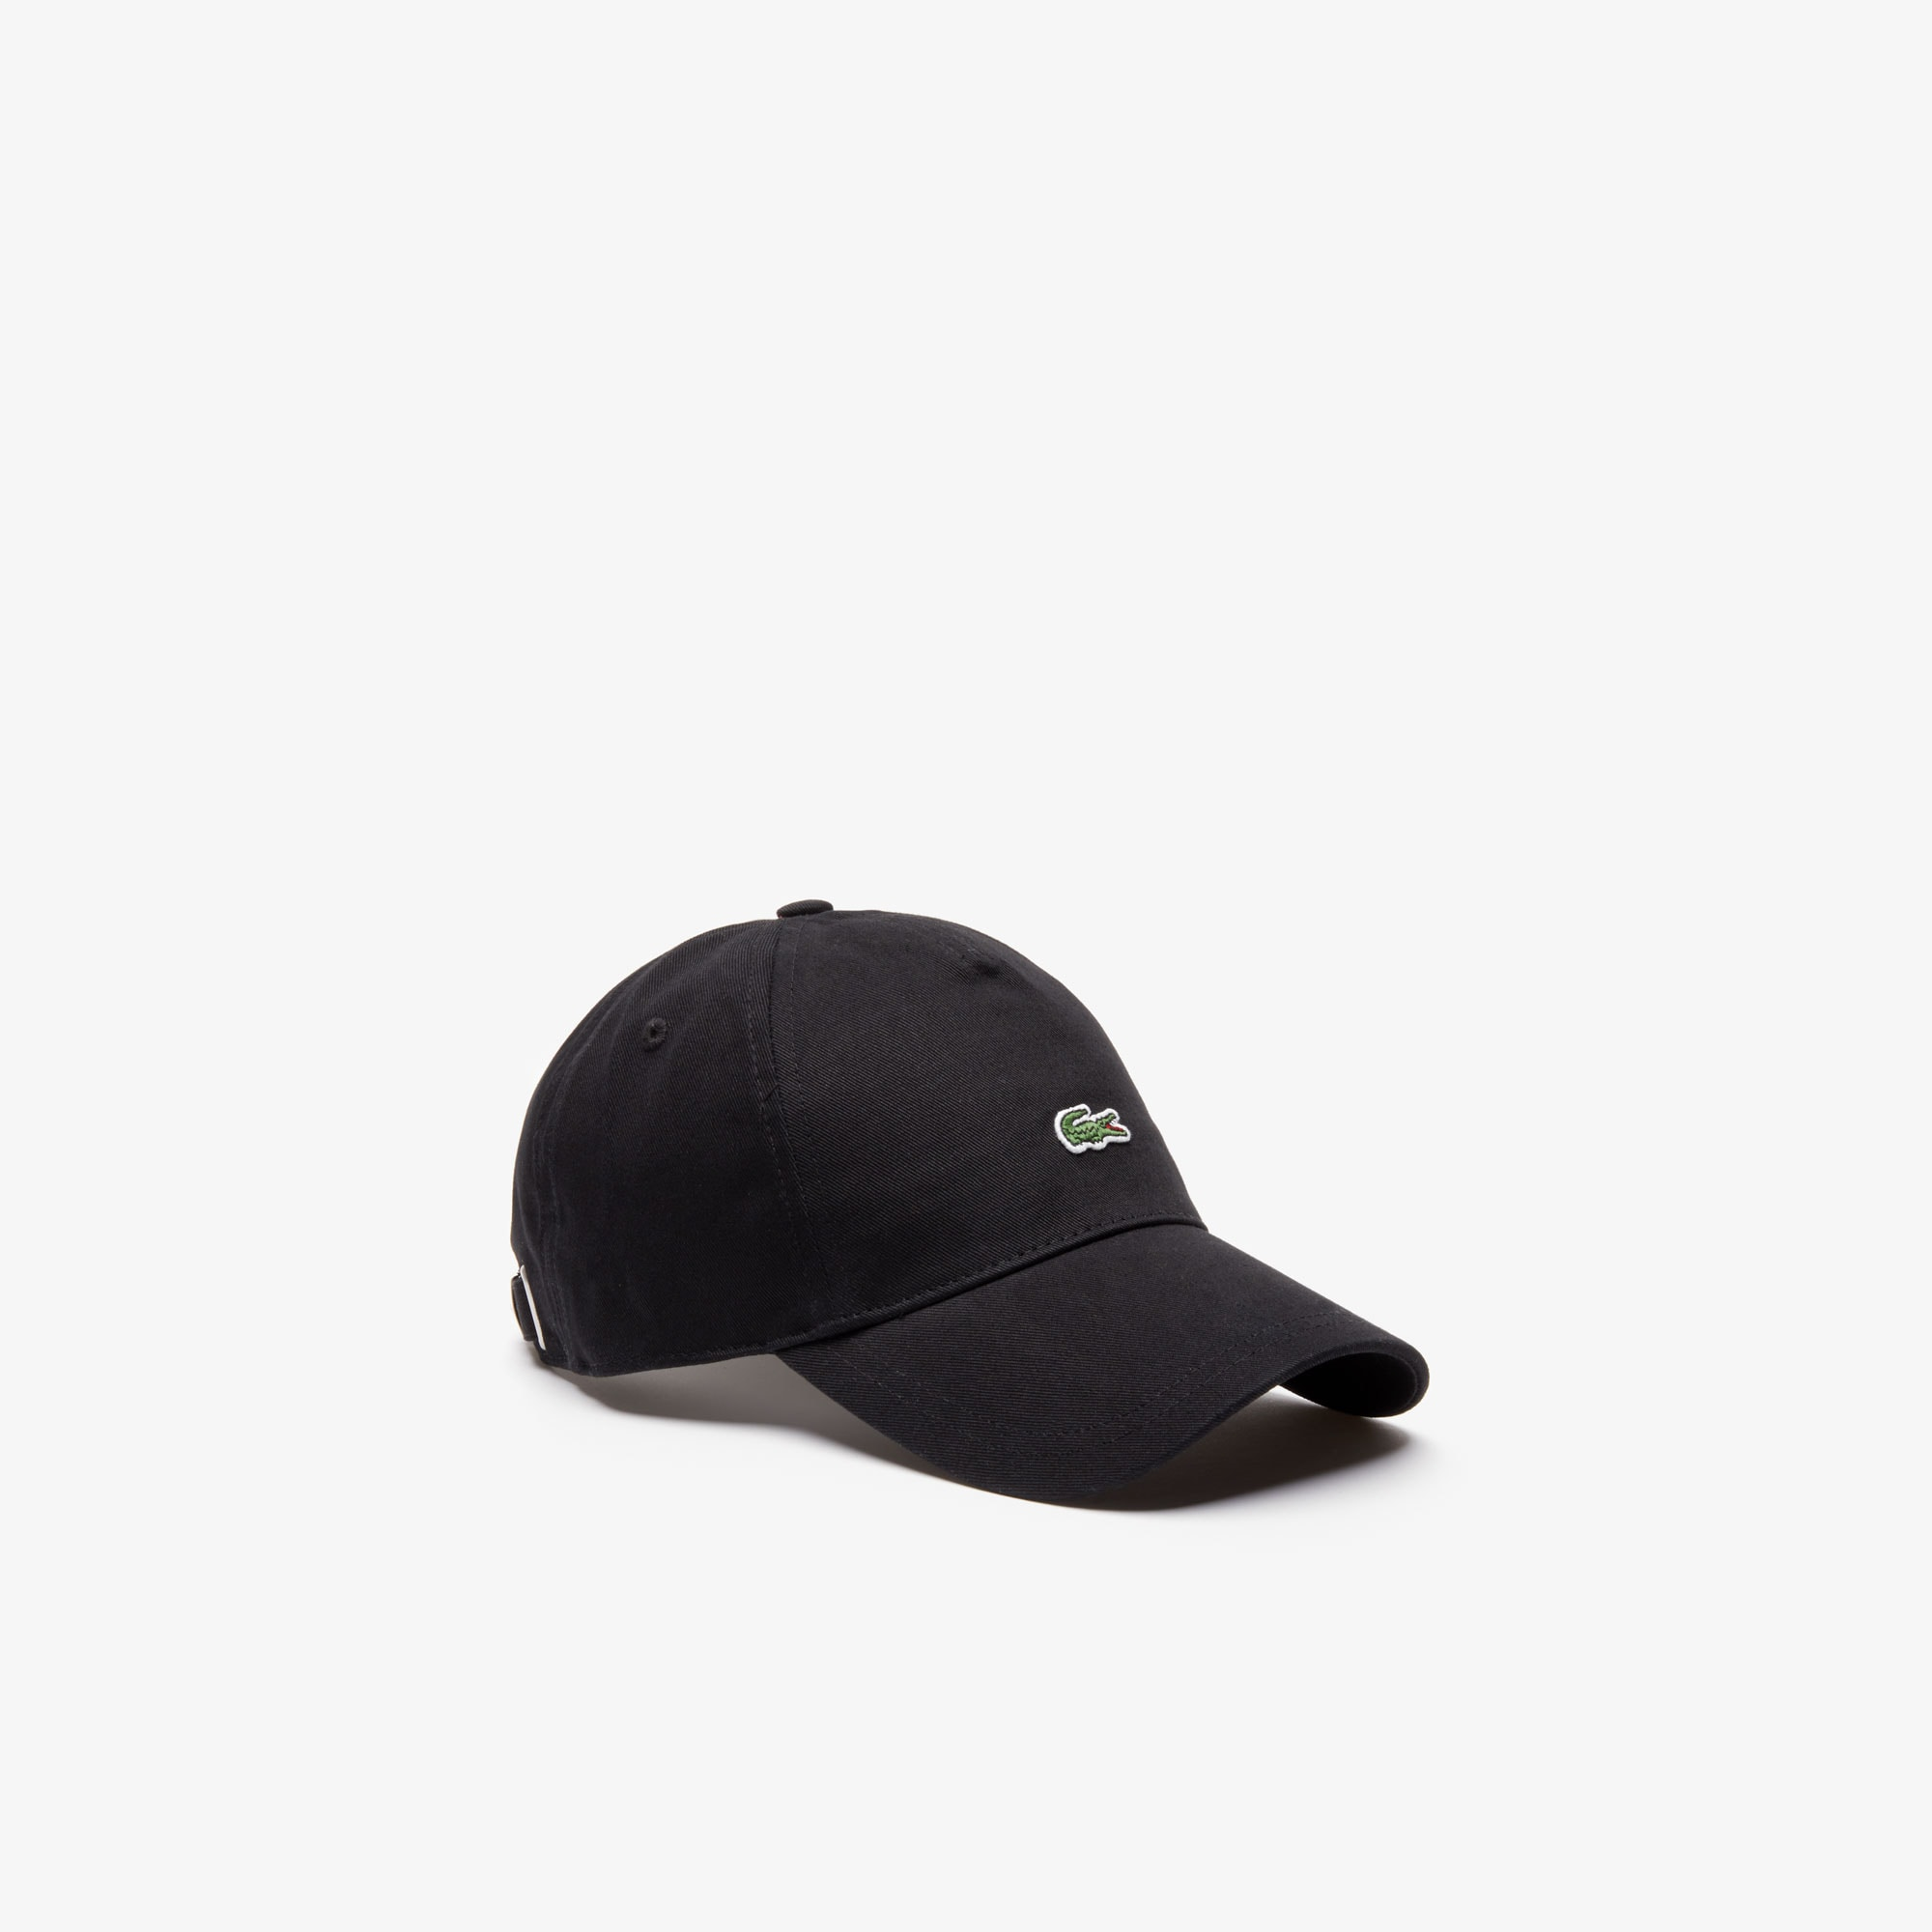 Men's Embroidered Crocodile Cotton Cap